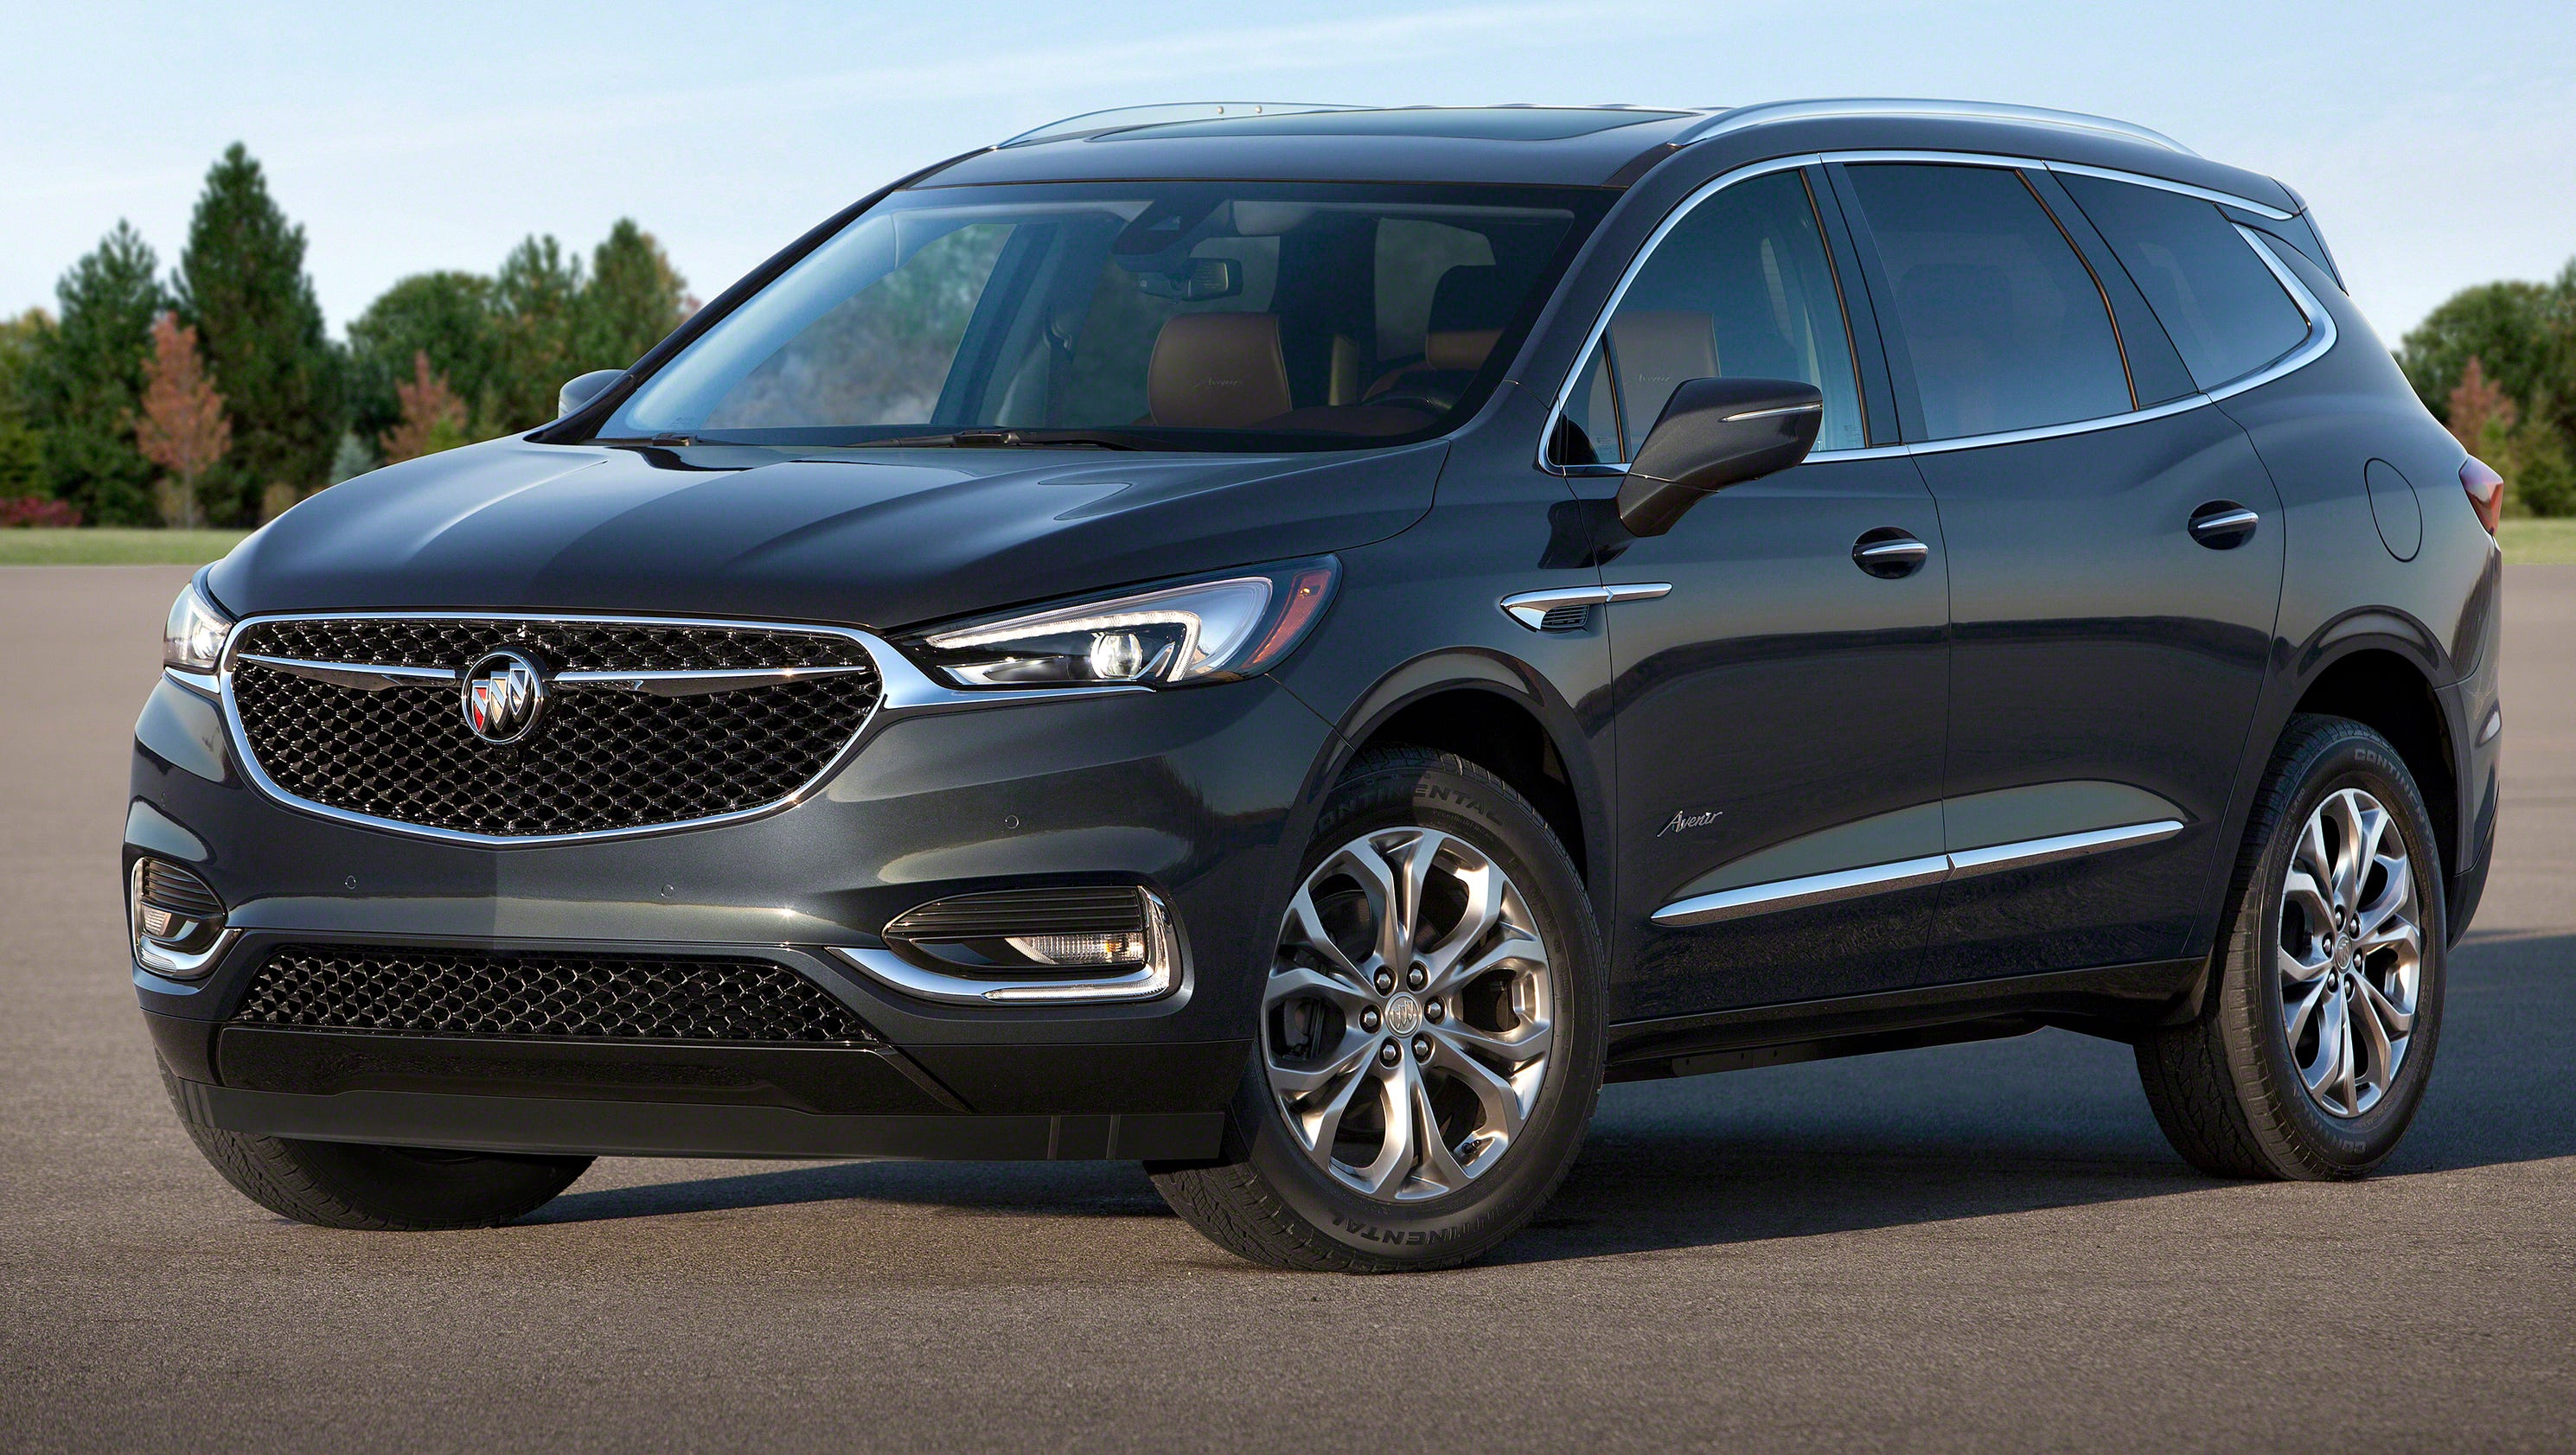 First look: 2018 Buick Enclave Avenir